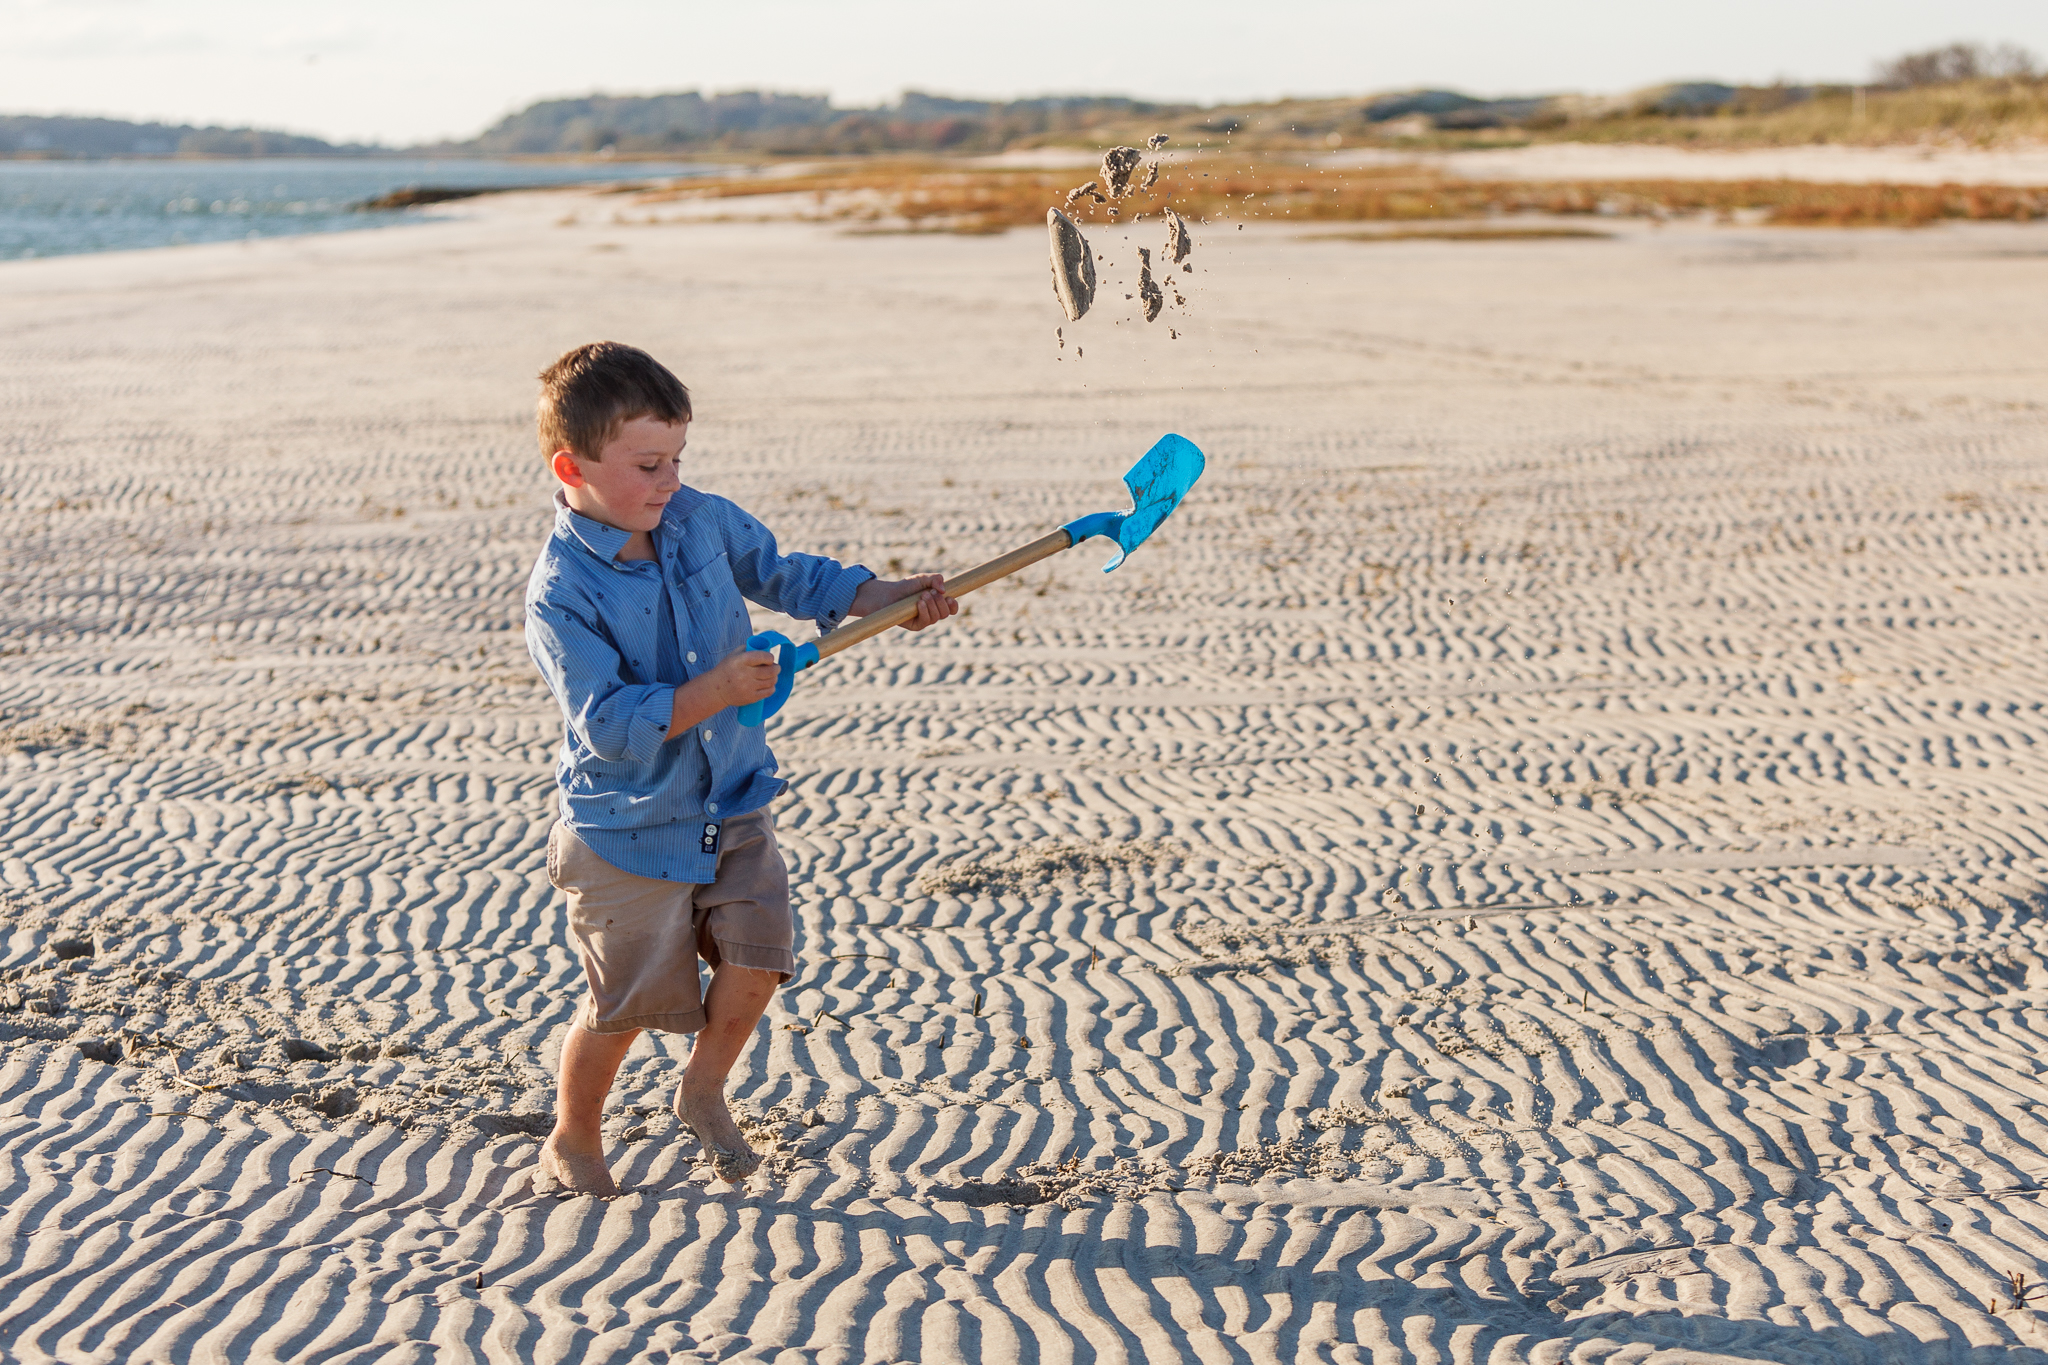 boy on beach flinging sand with a shovel